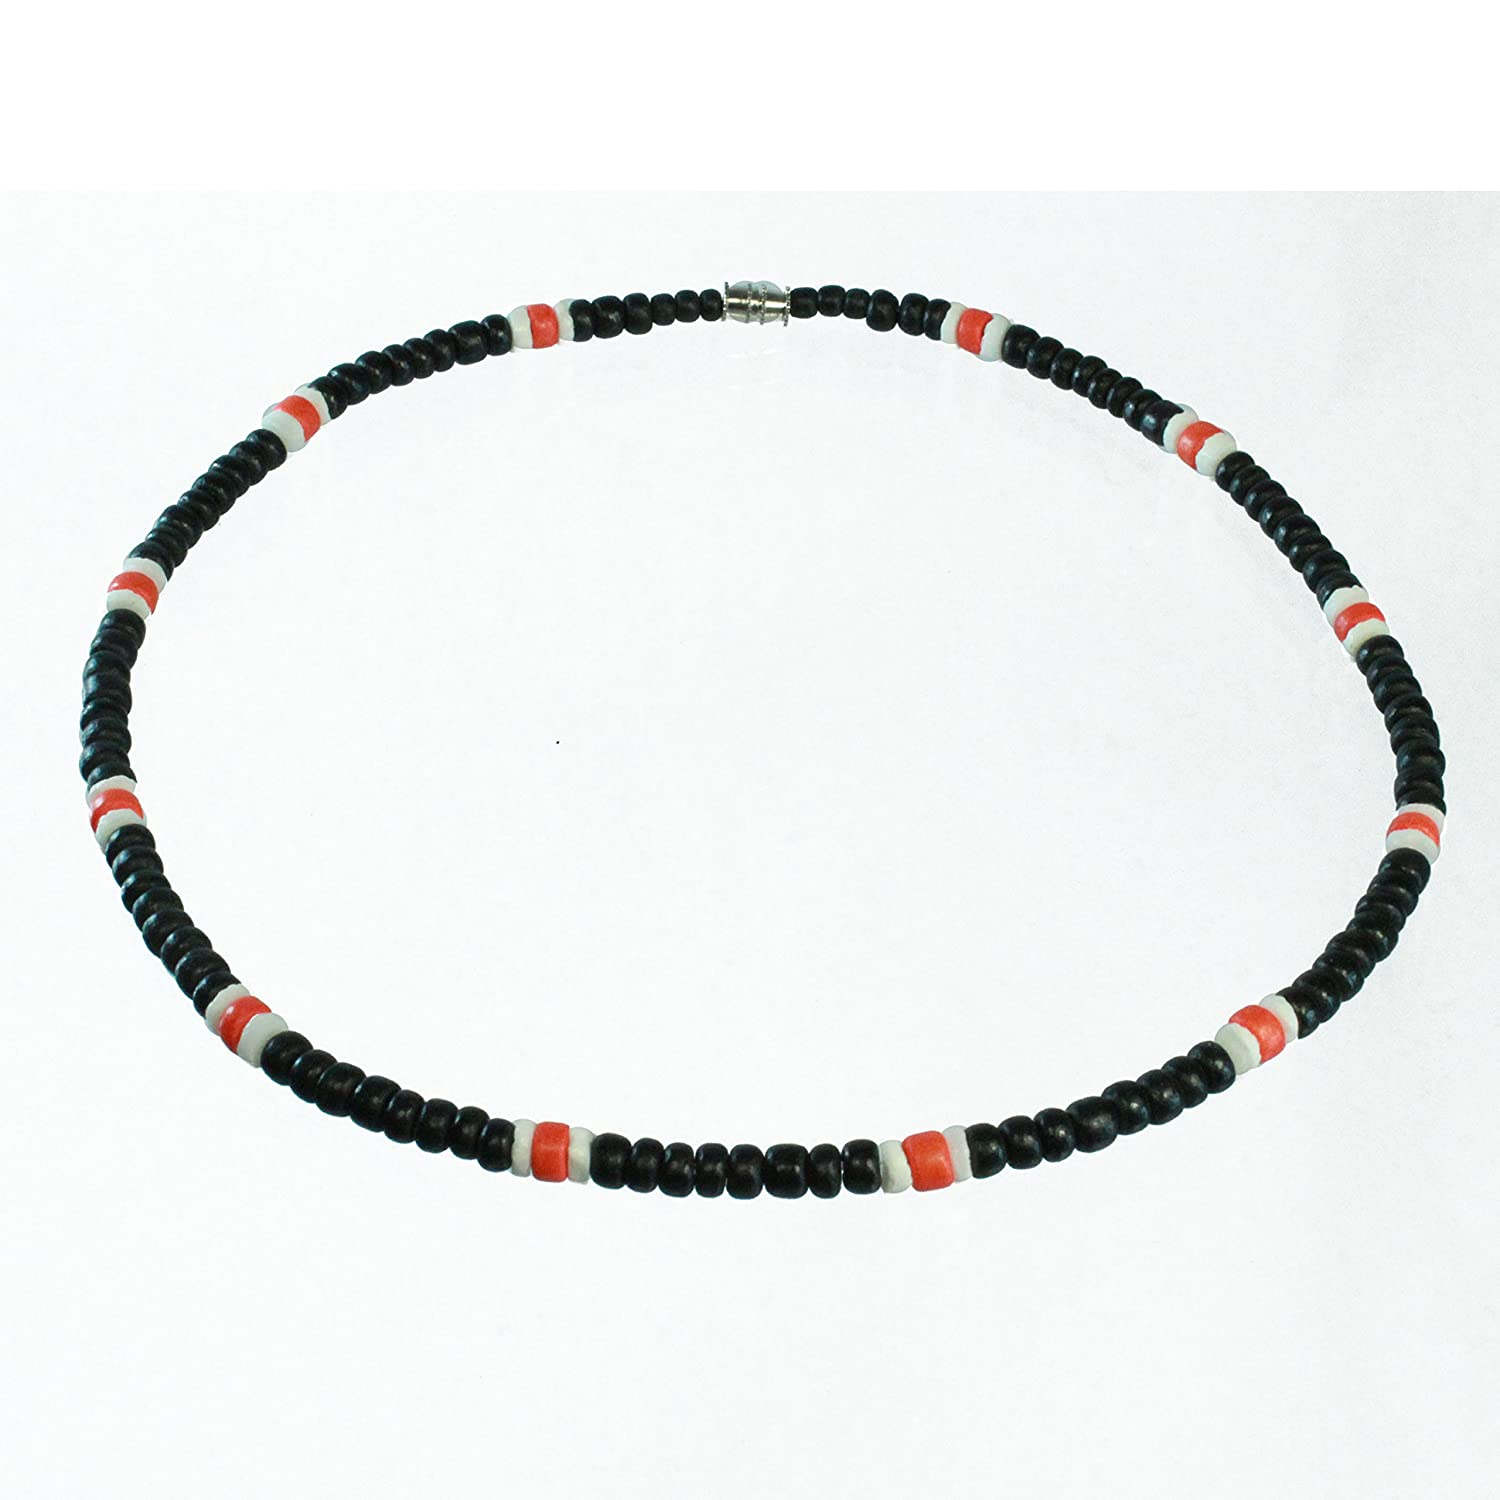 Black Coco Bead Hawaiian Surfer Necklace with White Puka Shell and Orange Coco Bead Accents, Barrel Lock